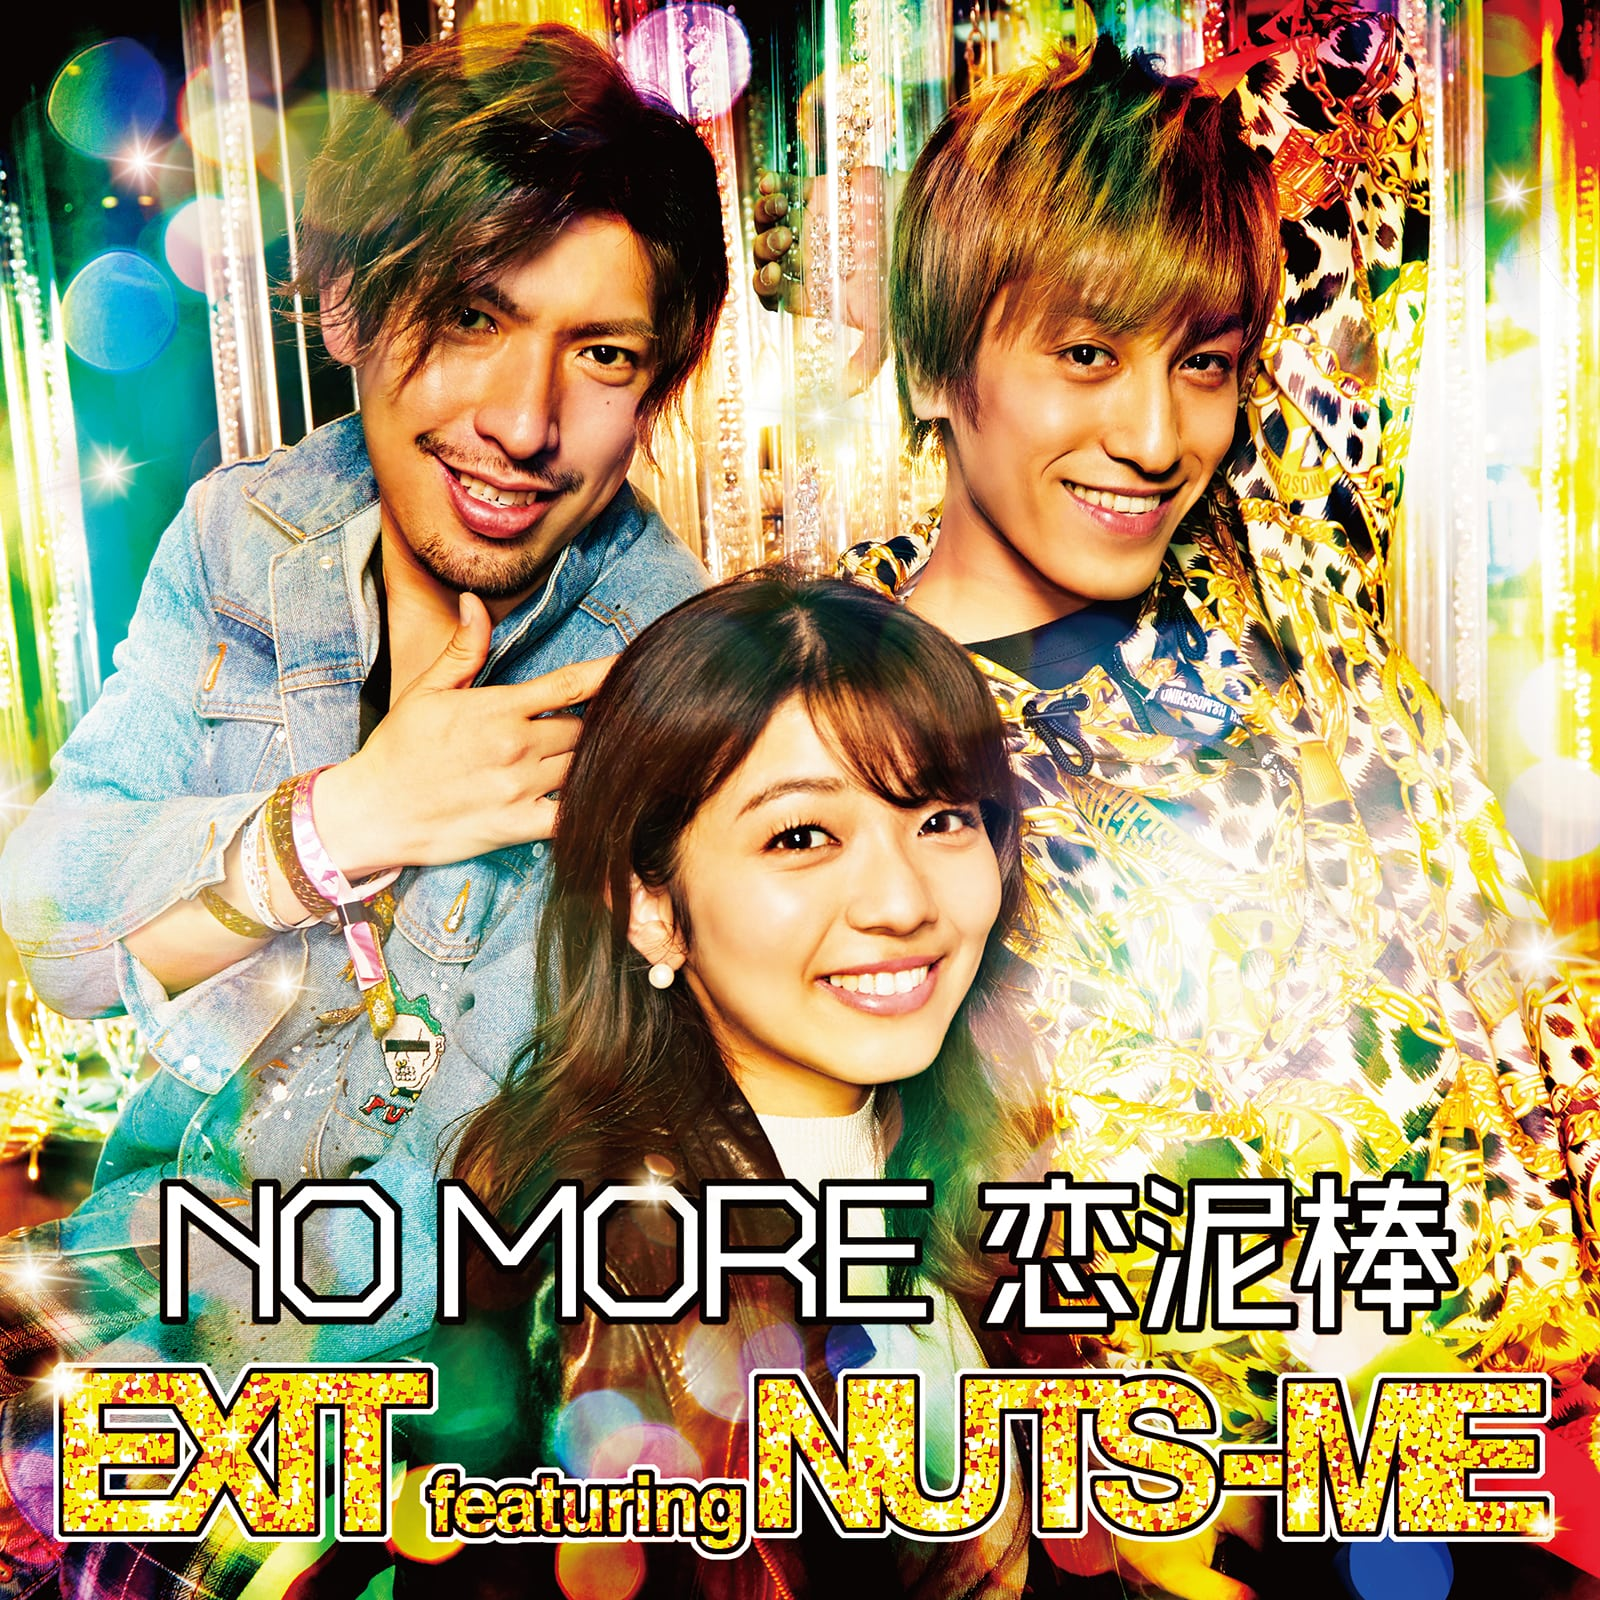 EXIT featuring NUTS-ME「NO MORE 恋泥棒」